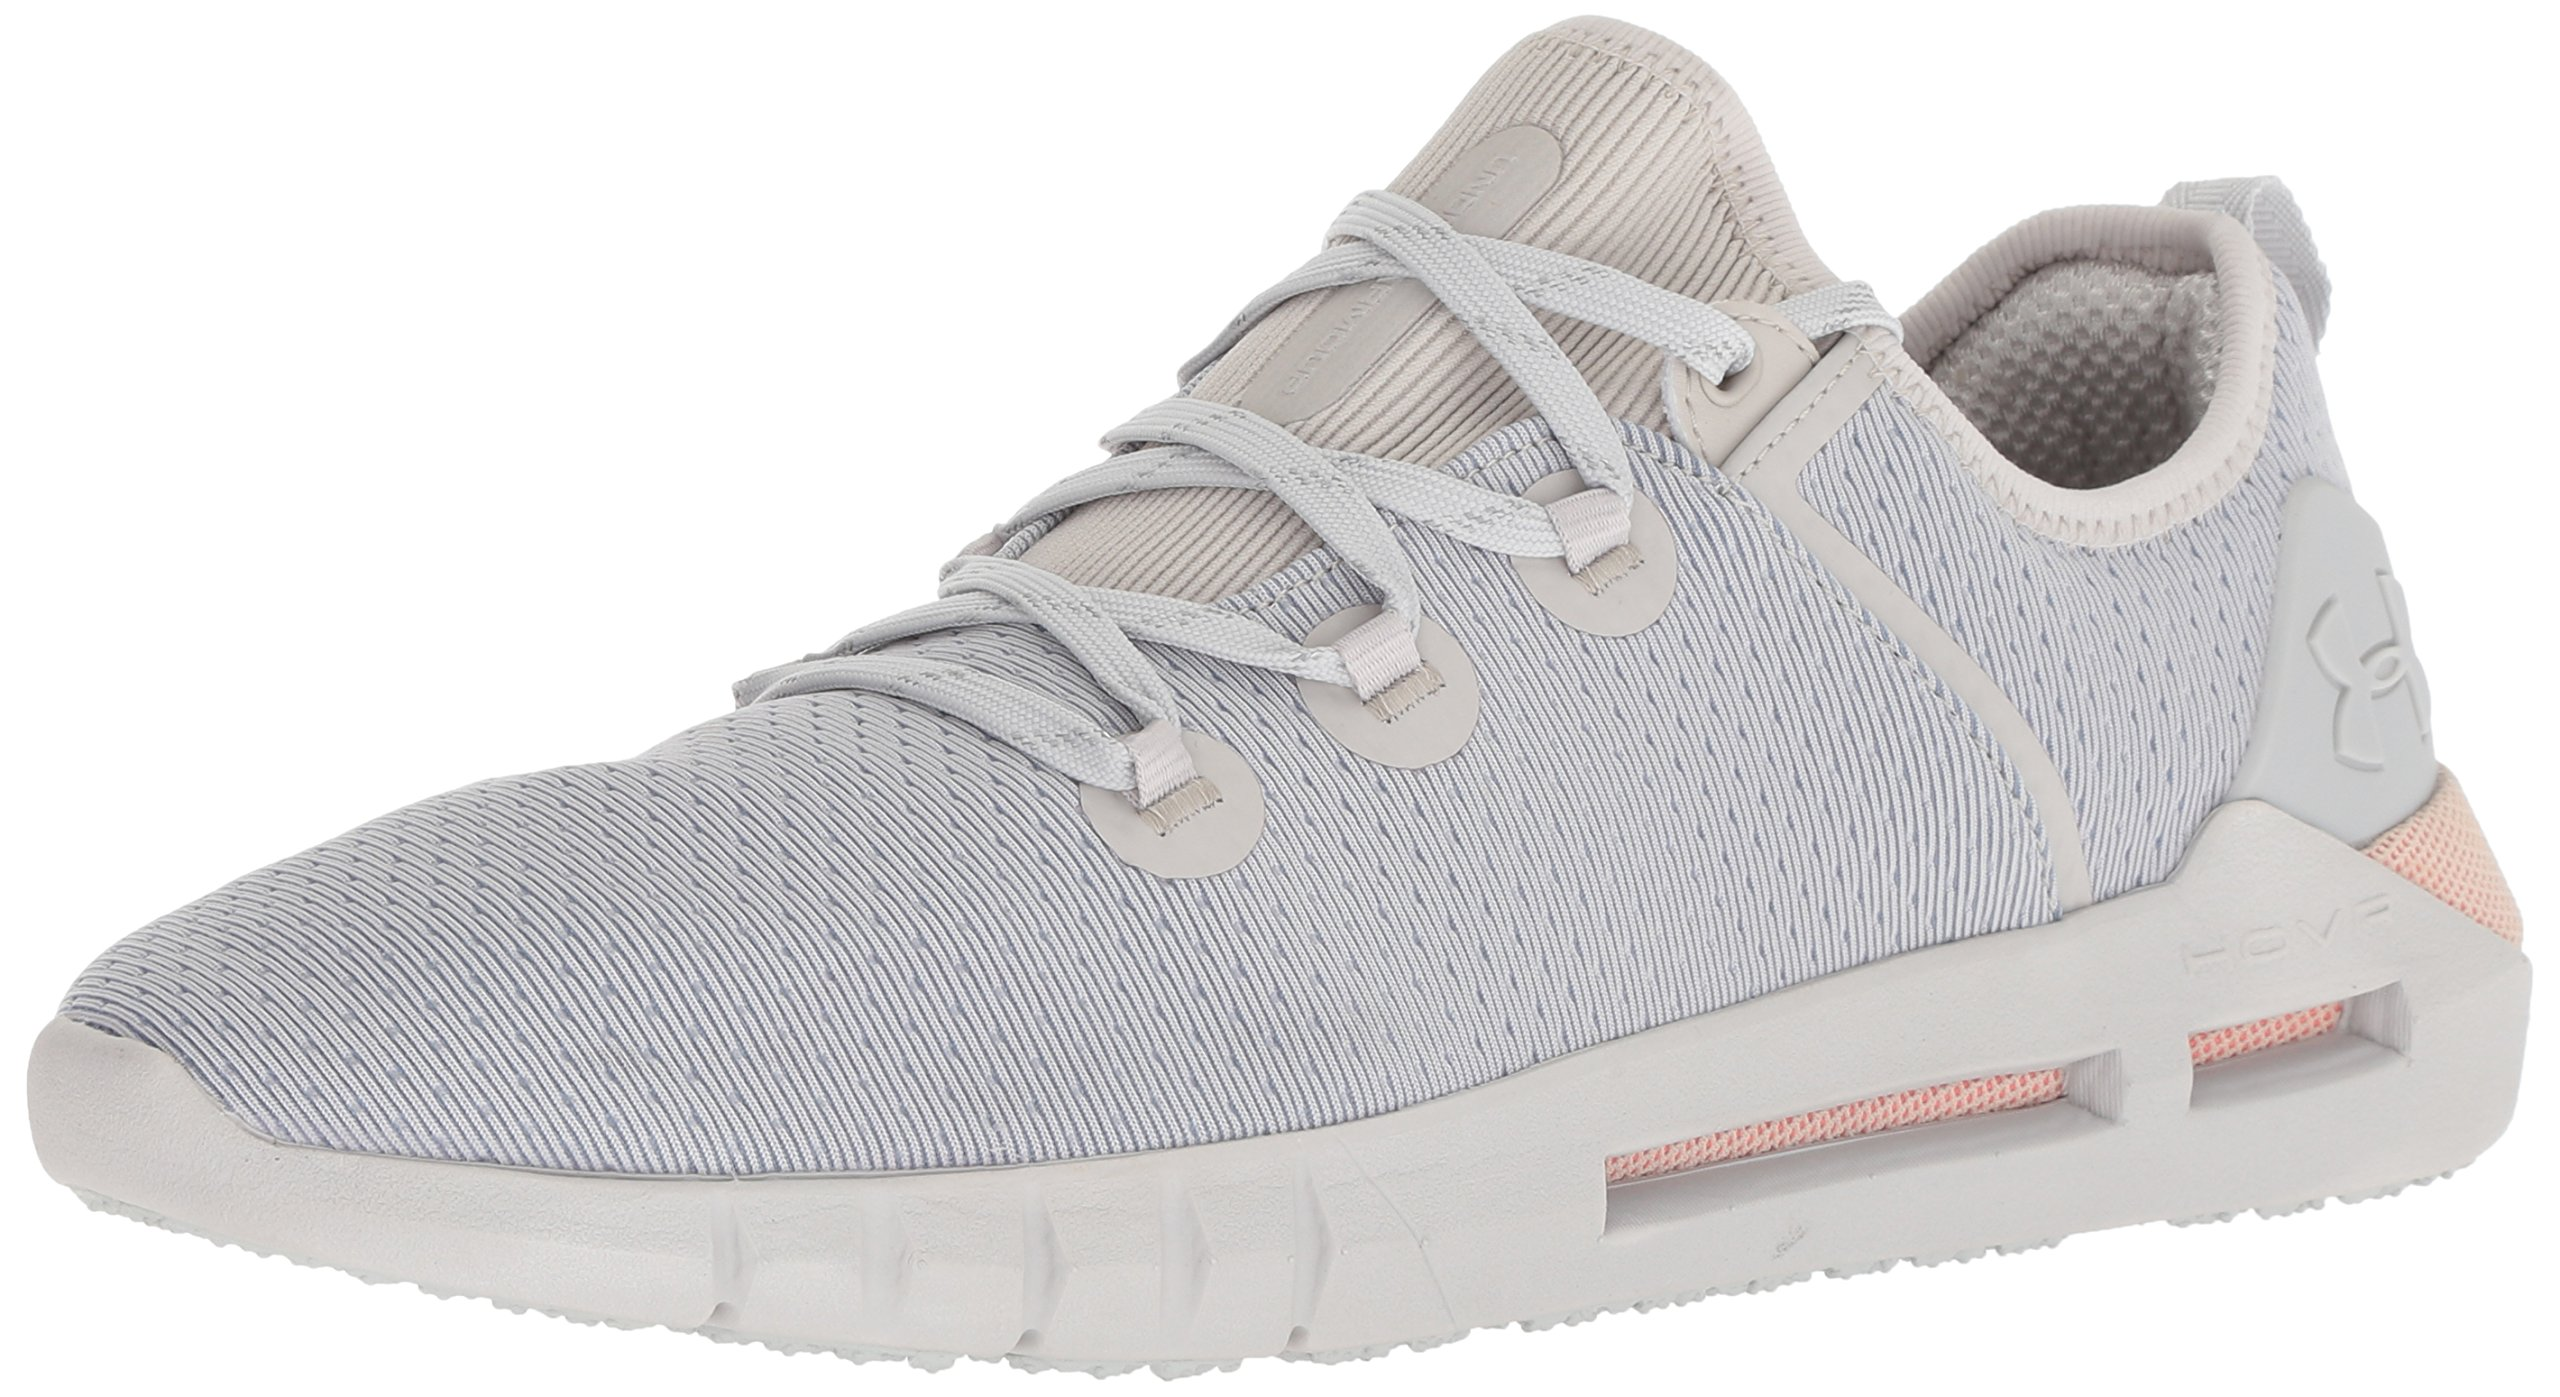 feec6f97 Under Armour Men's HOVR SLK Sneaker, Ghost Gray (105)/Washed Blue, 11.5